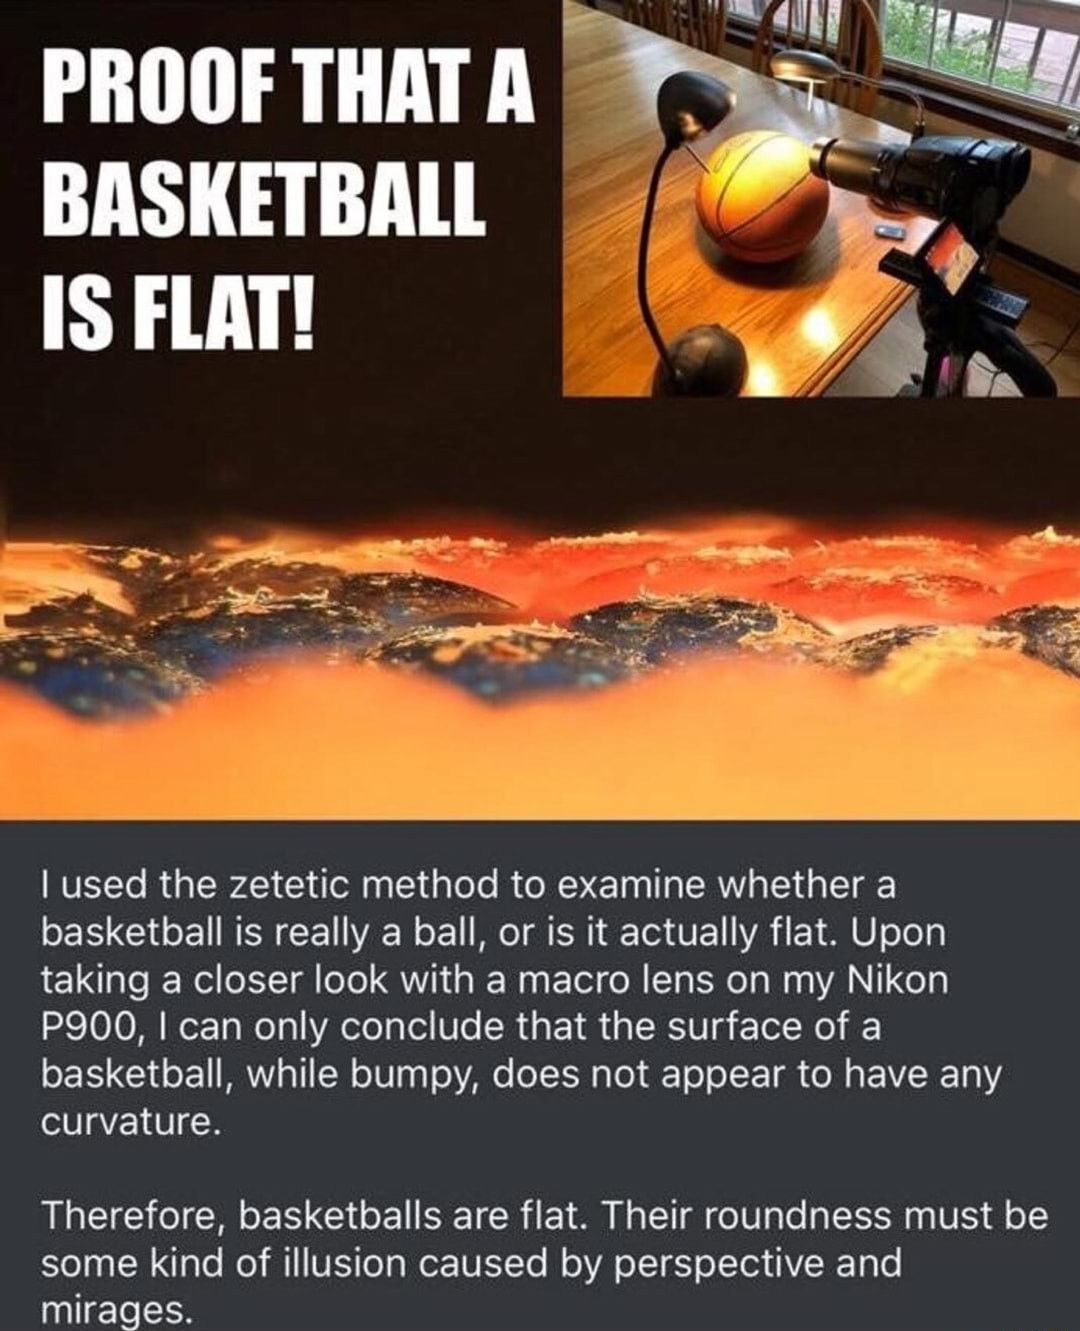 Proof That Basketballs Are Flat This Is Making Fun Of People Who Believe The Earth Is Flat Btw Flat Earth Theory Top Memes Memes Of The Day